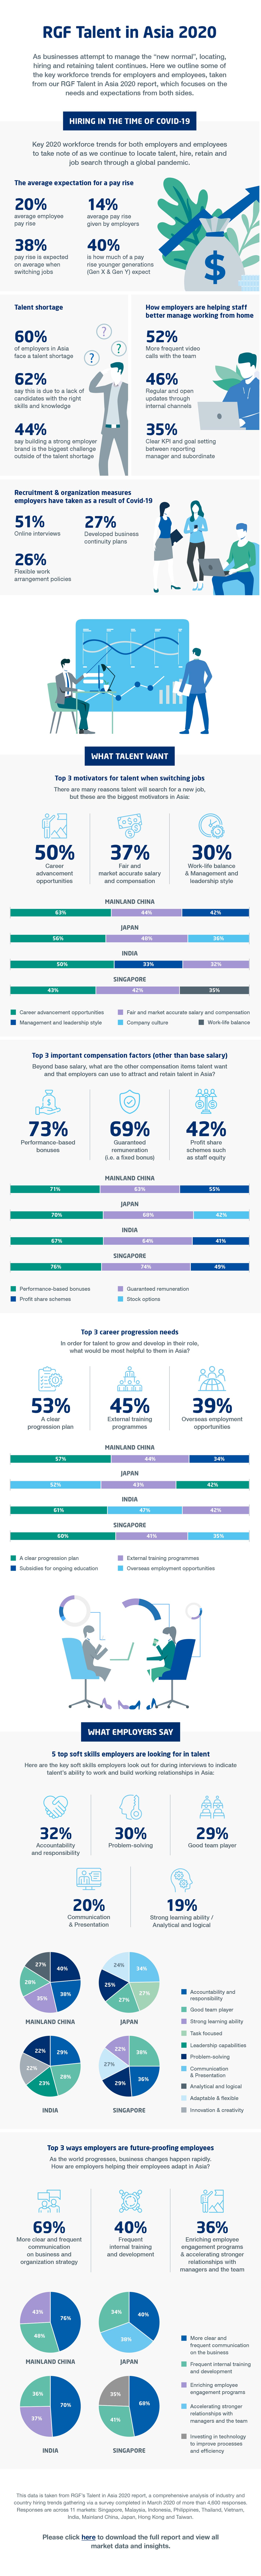 talent in asia 2020 infographic